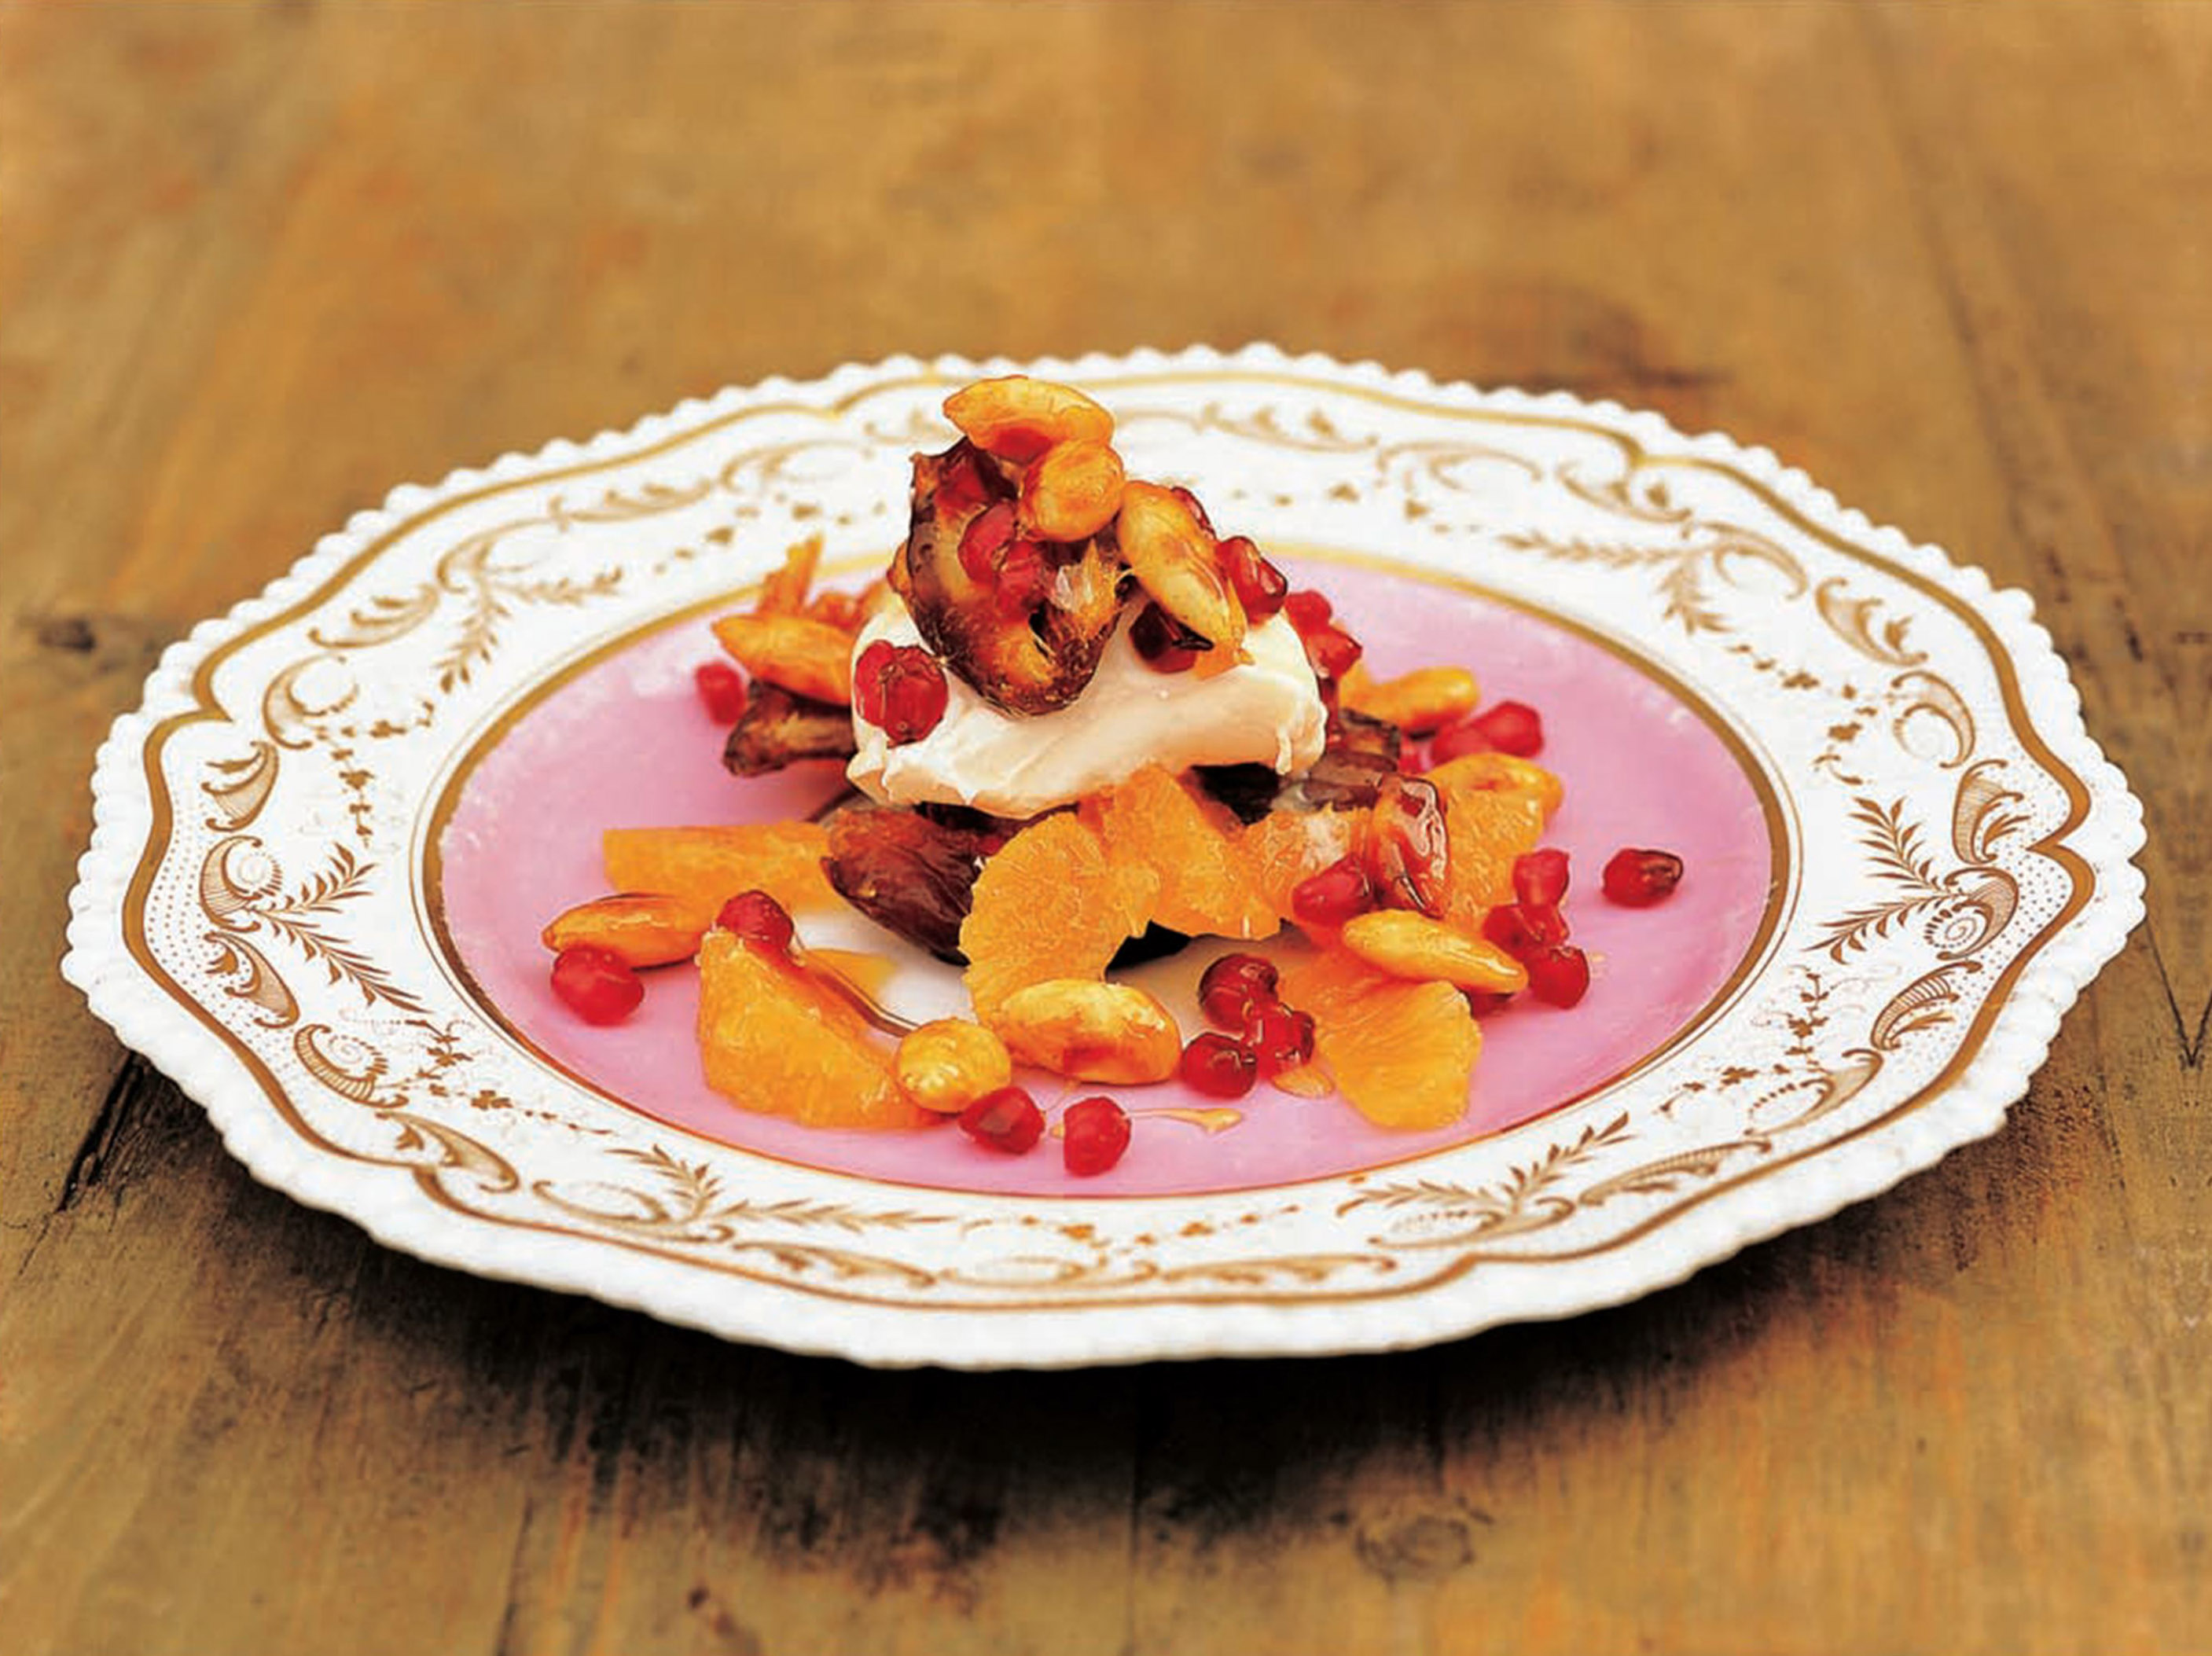 Clementines with medjool dates, pomegranates and honeyed almonds